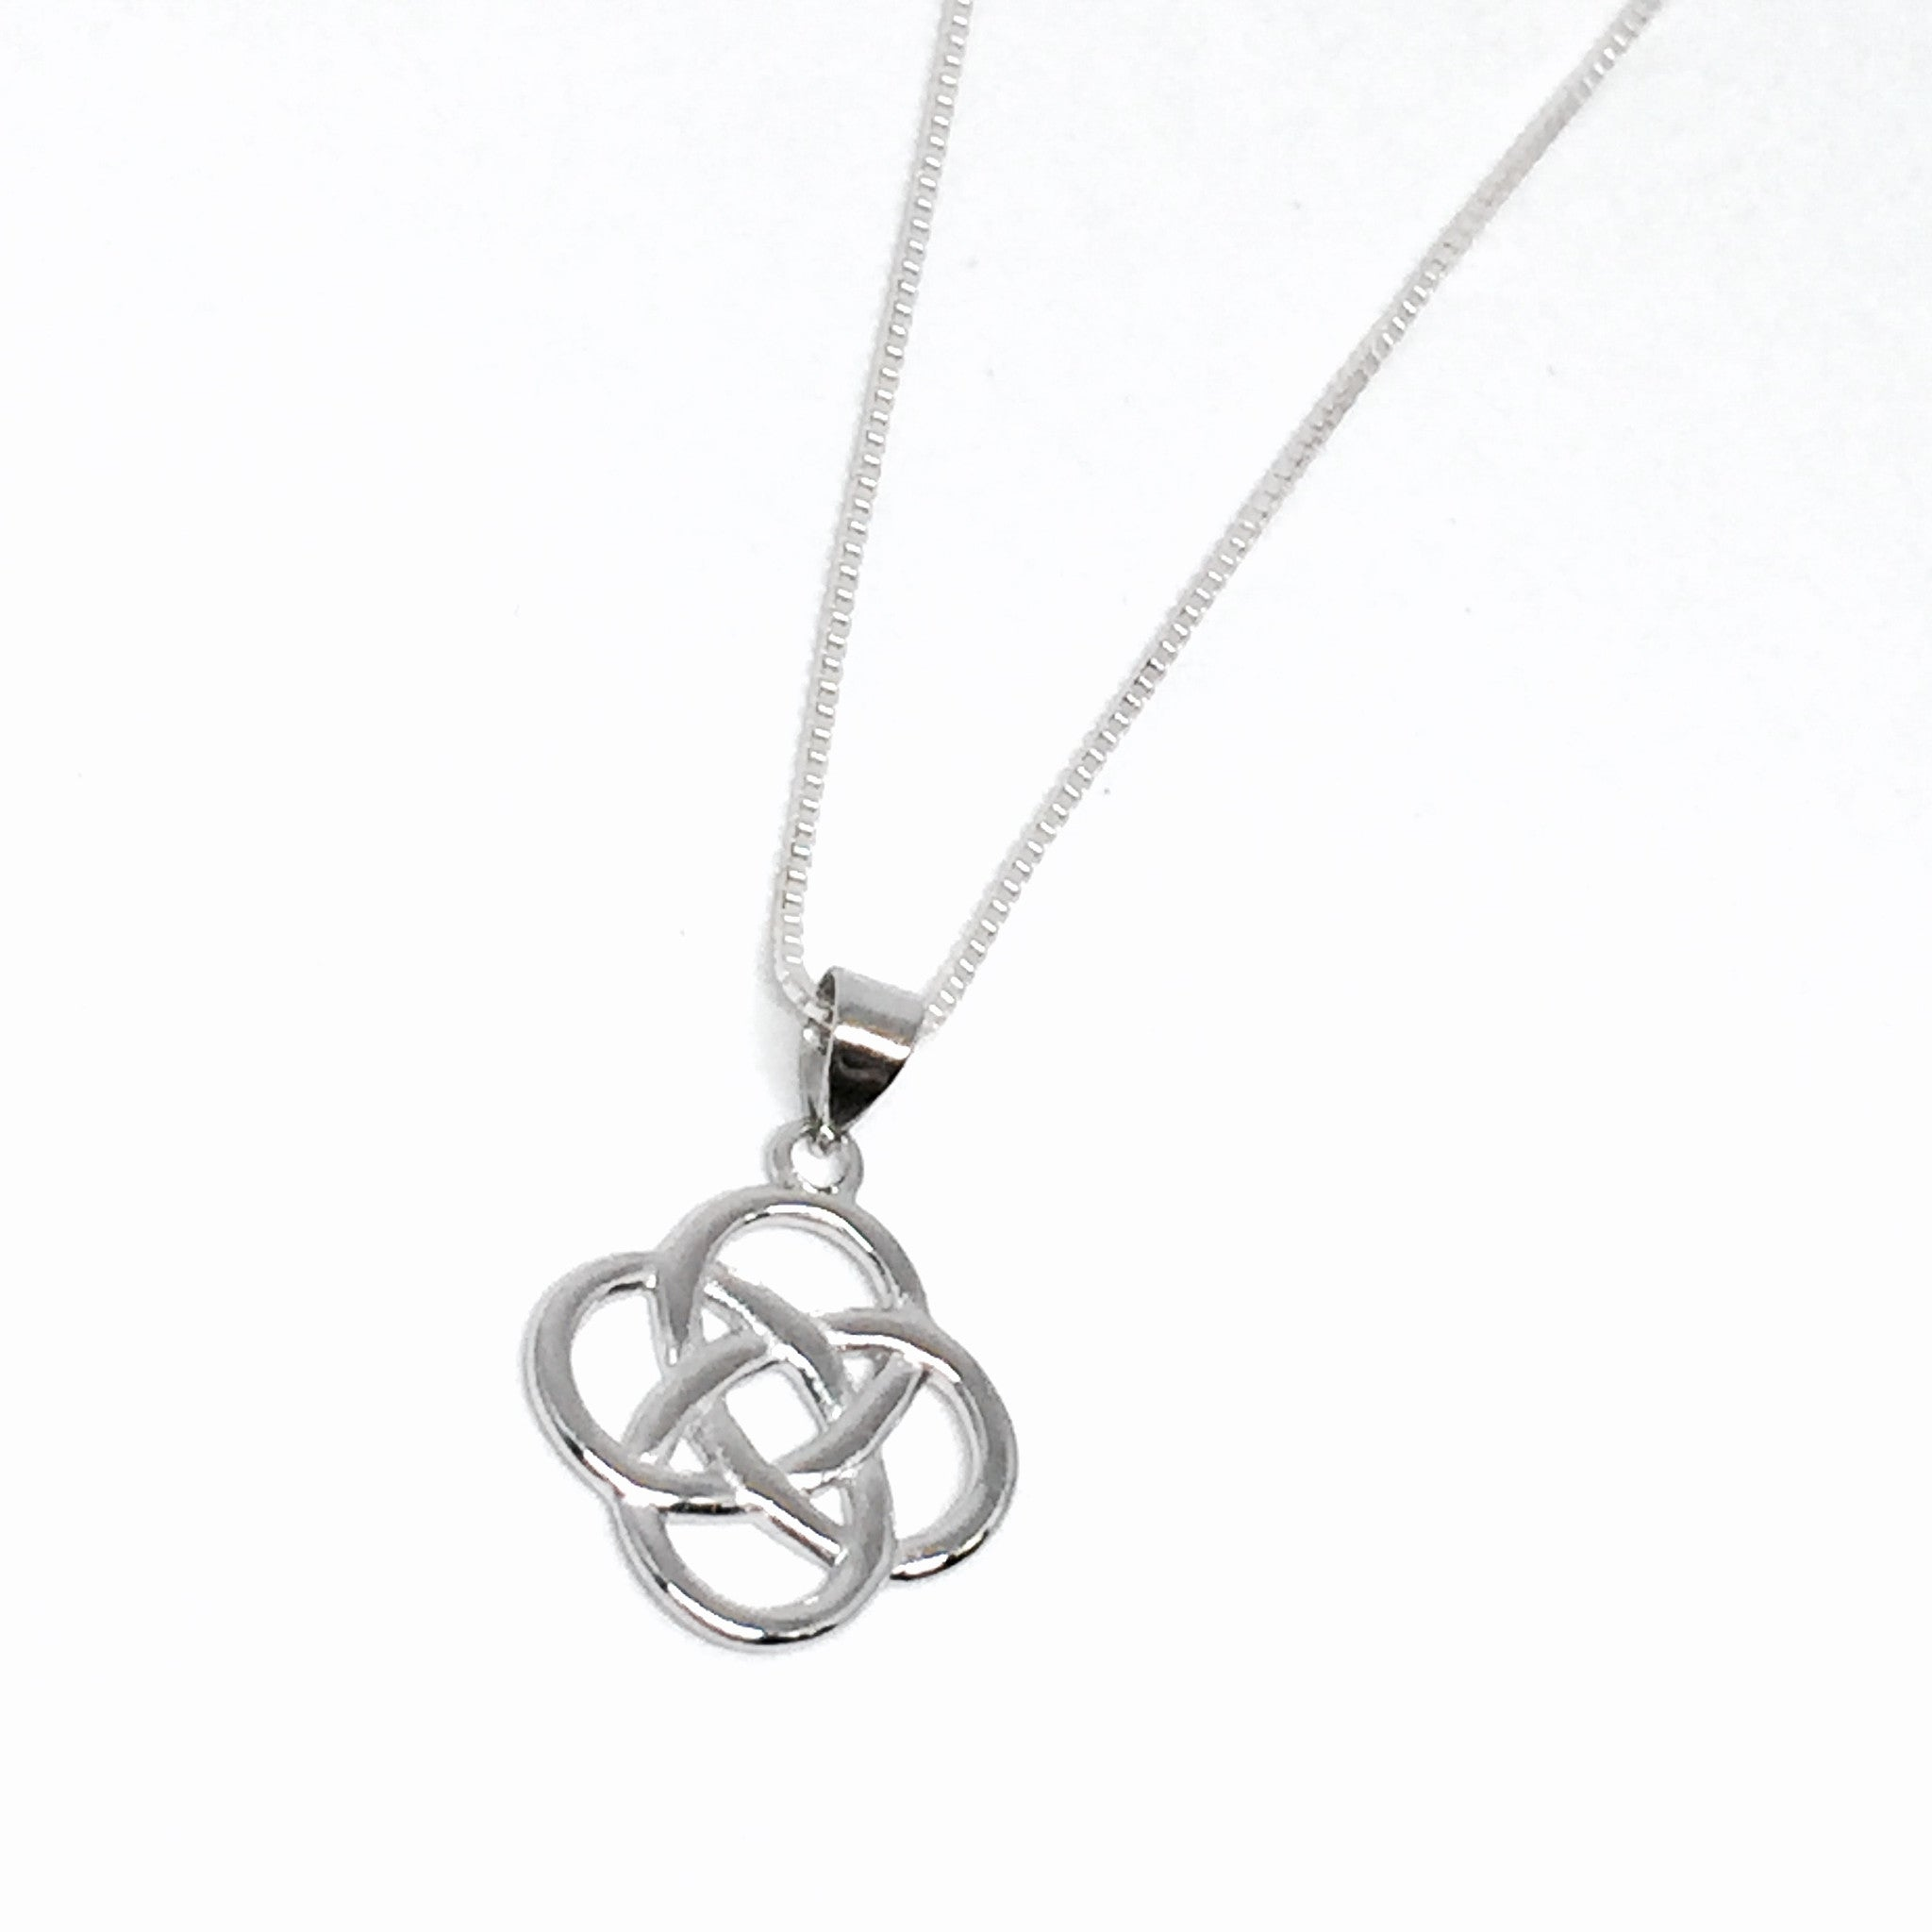 silver pendants with sterling chunky pendant chain knot